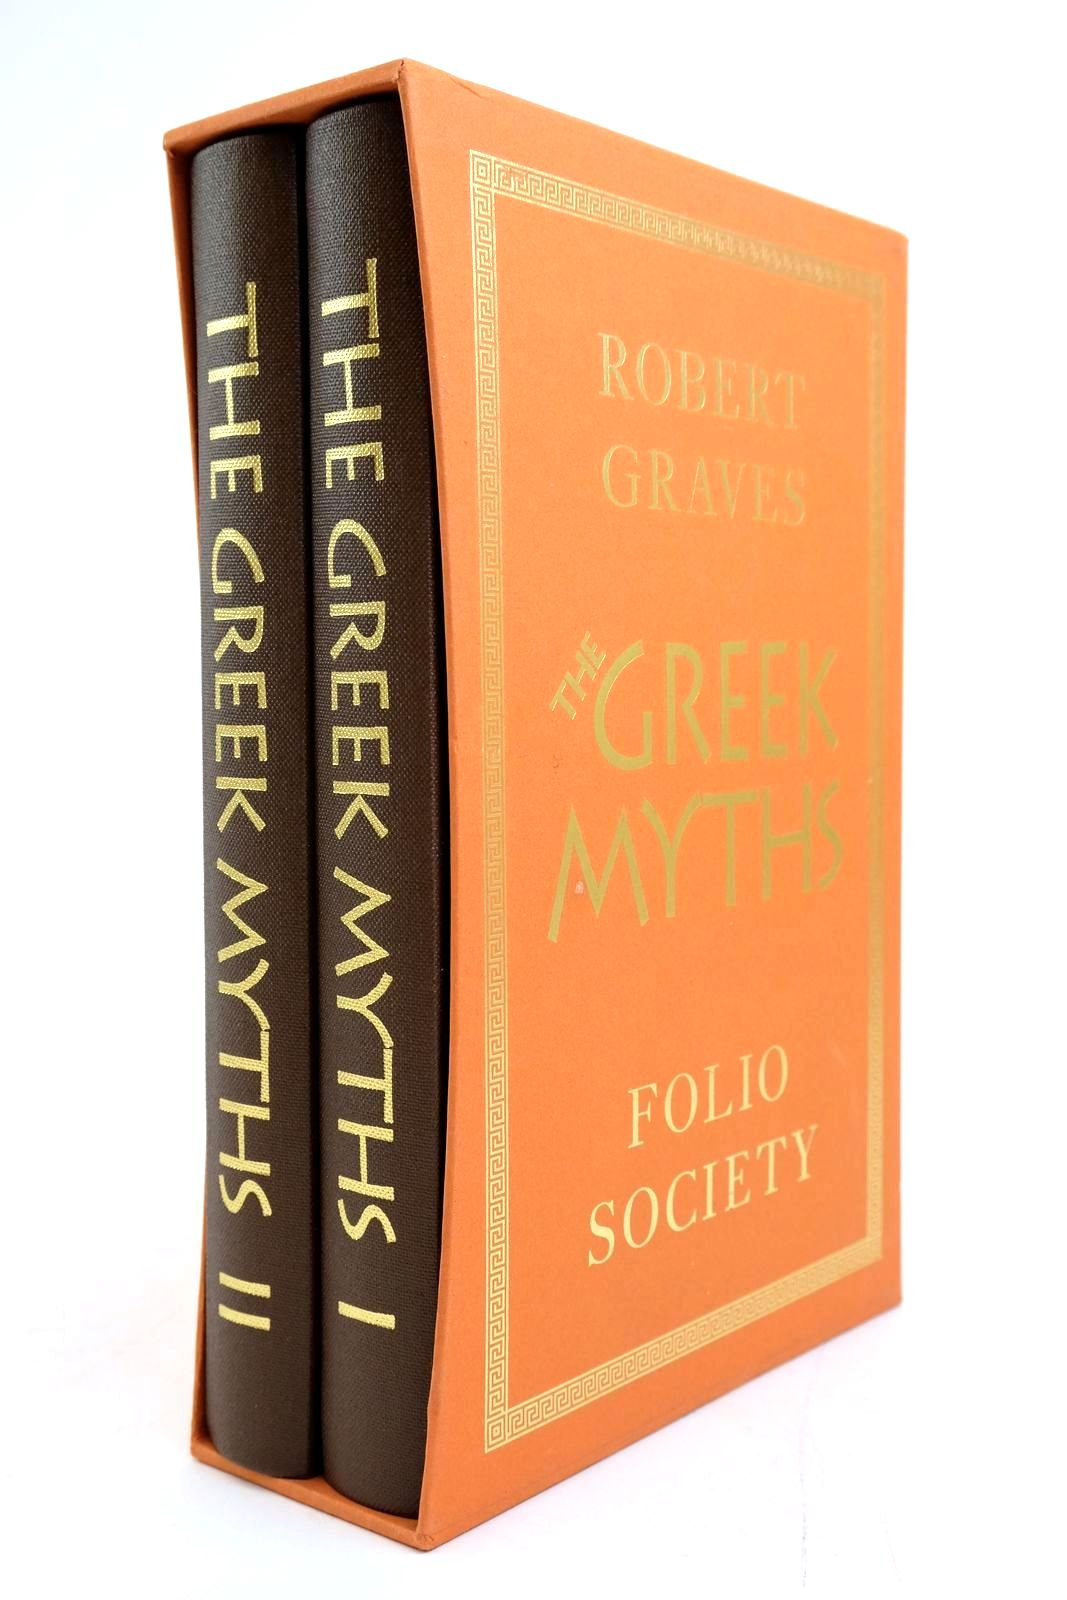 Photo of THE GREEK MYTHS (2 VOLUMES) written by Graves, Robert McLeish, Kenneth illustrated by Baker, Grahame published by Folio Society (STOCK CODE: 2135272)  for sale by Stella & Rose's Books